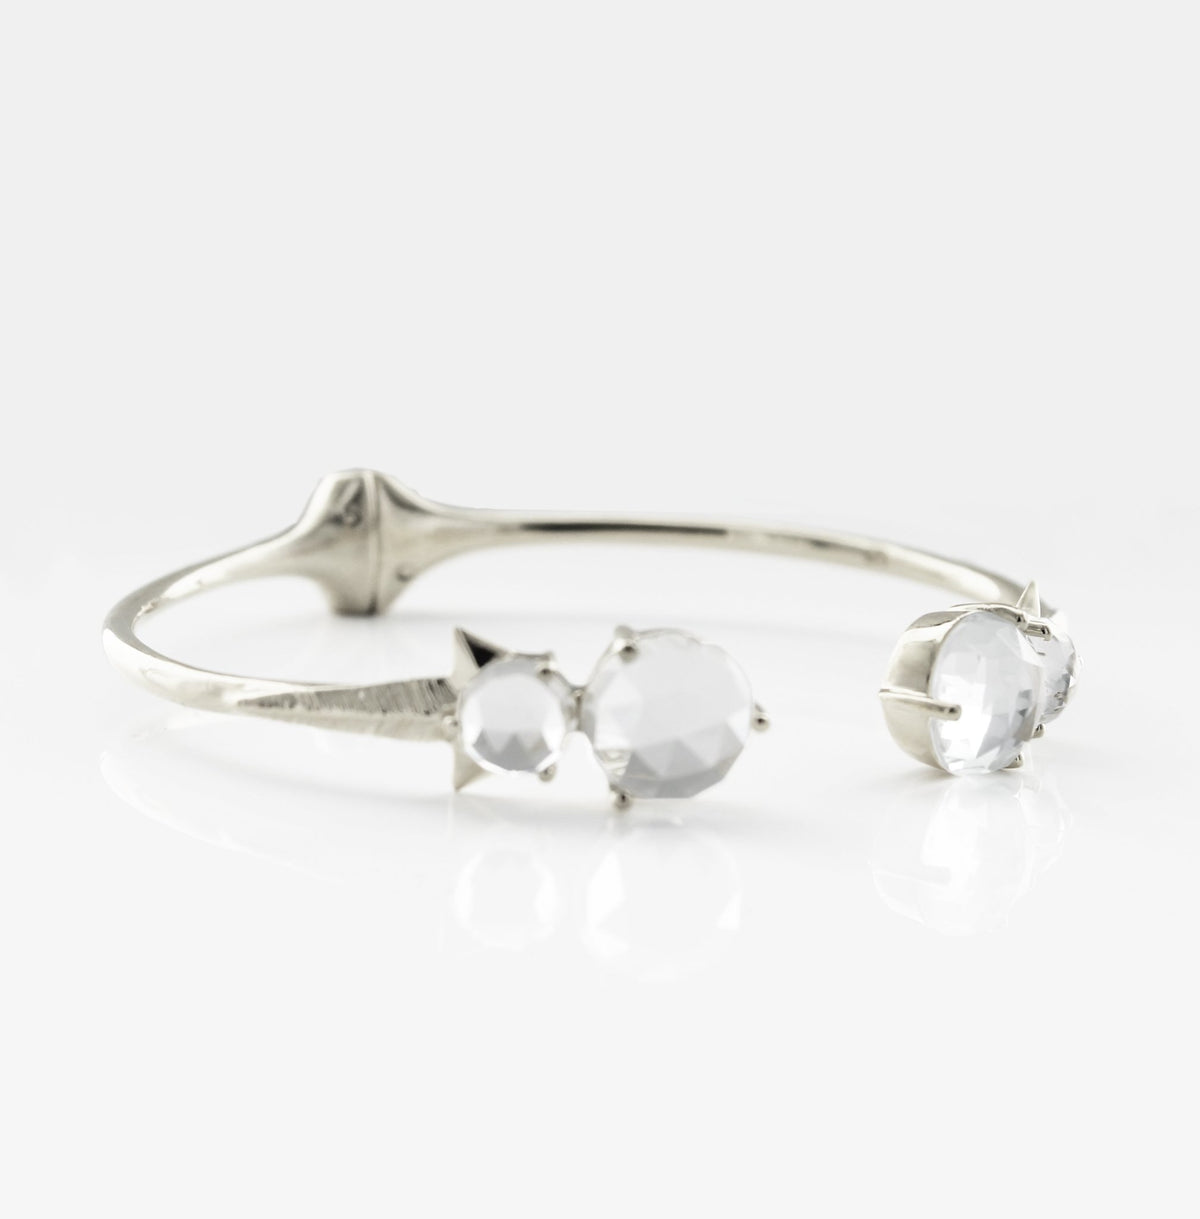 WONDER FALLING STAR CUFF - WHITE TOPAZ & SILVER - SO PRETTY CARA COTTER